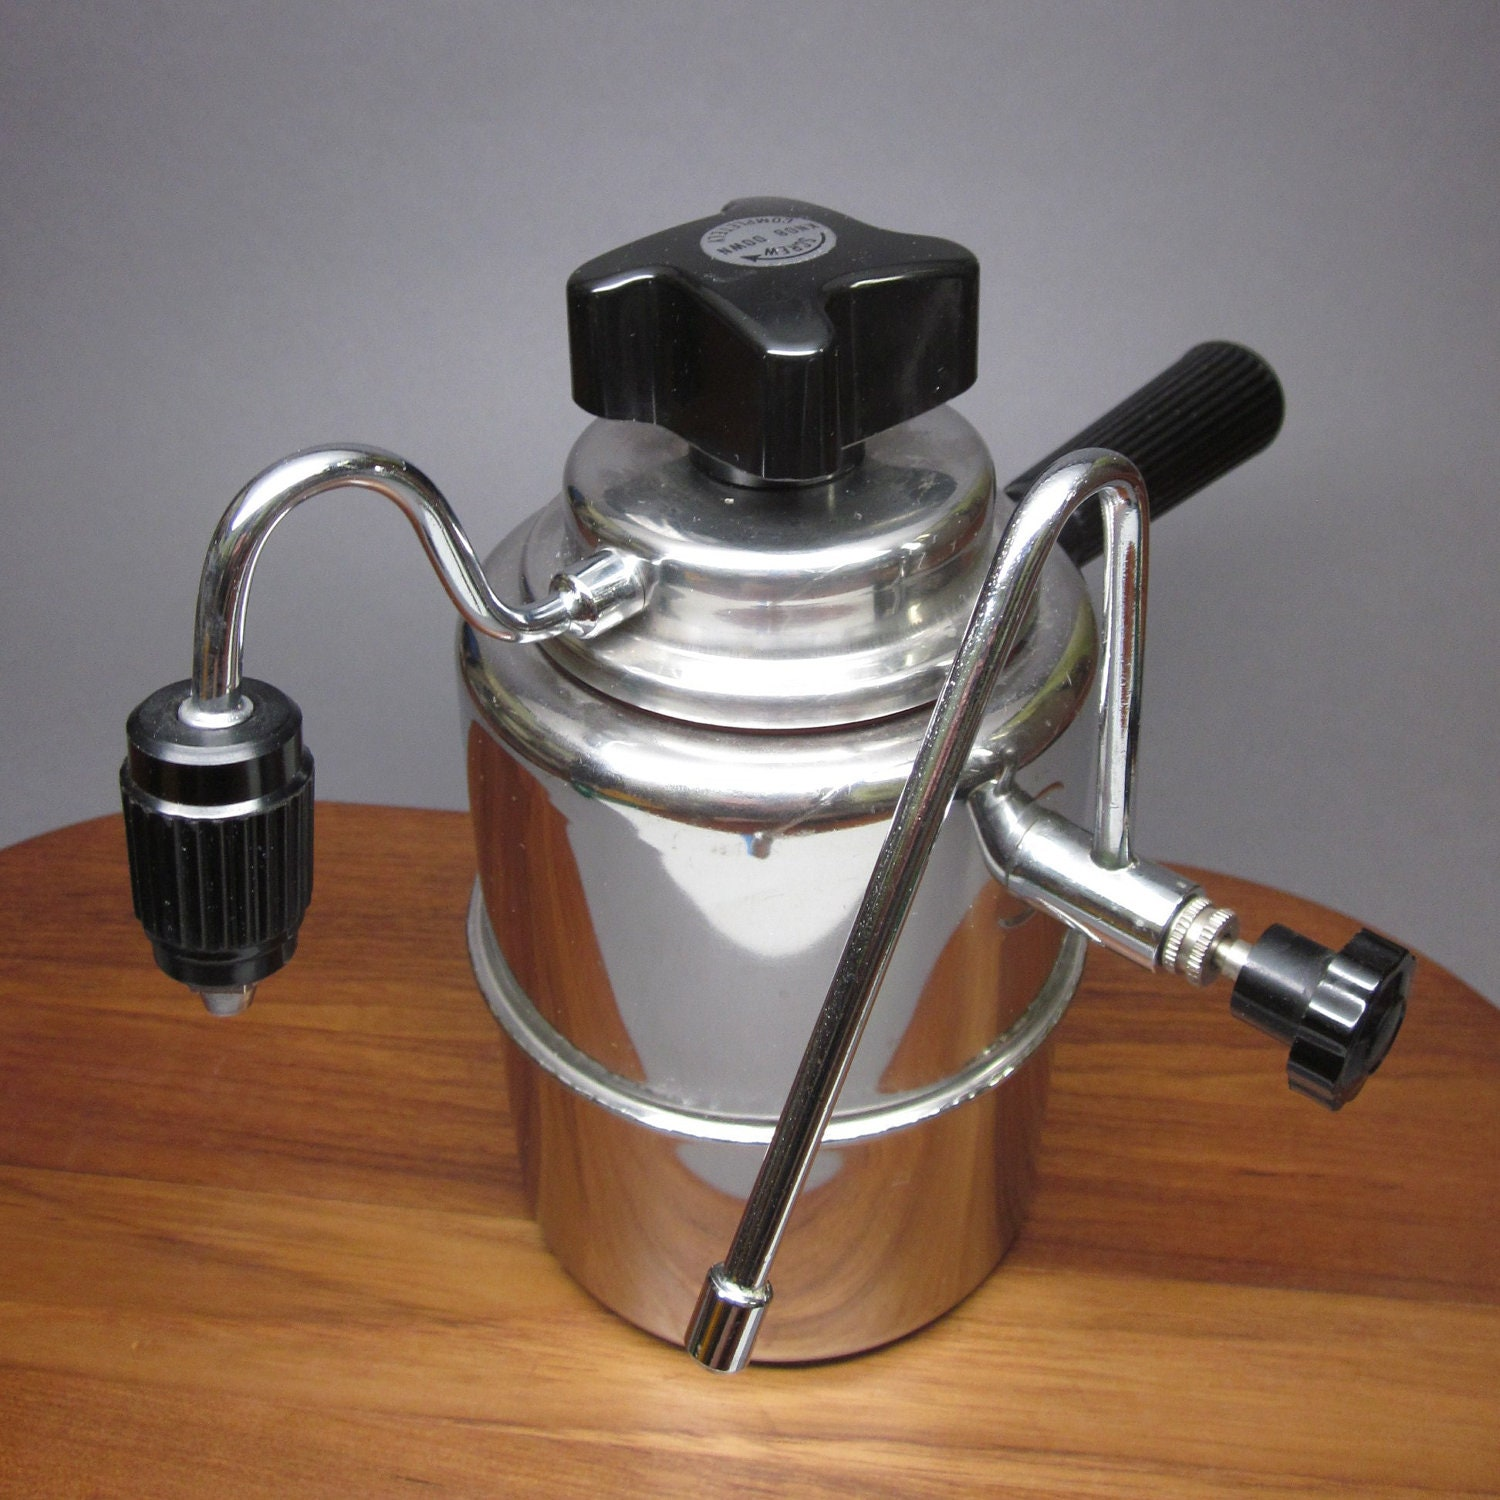 Coffee Maker With Milk Steamer : Elebak Stovetop Espresso Maker & Milk Frother Stainless